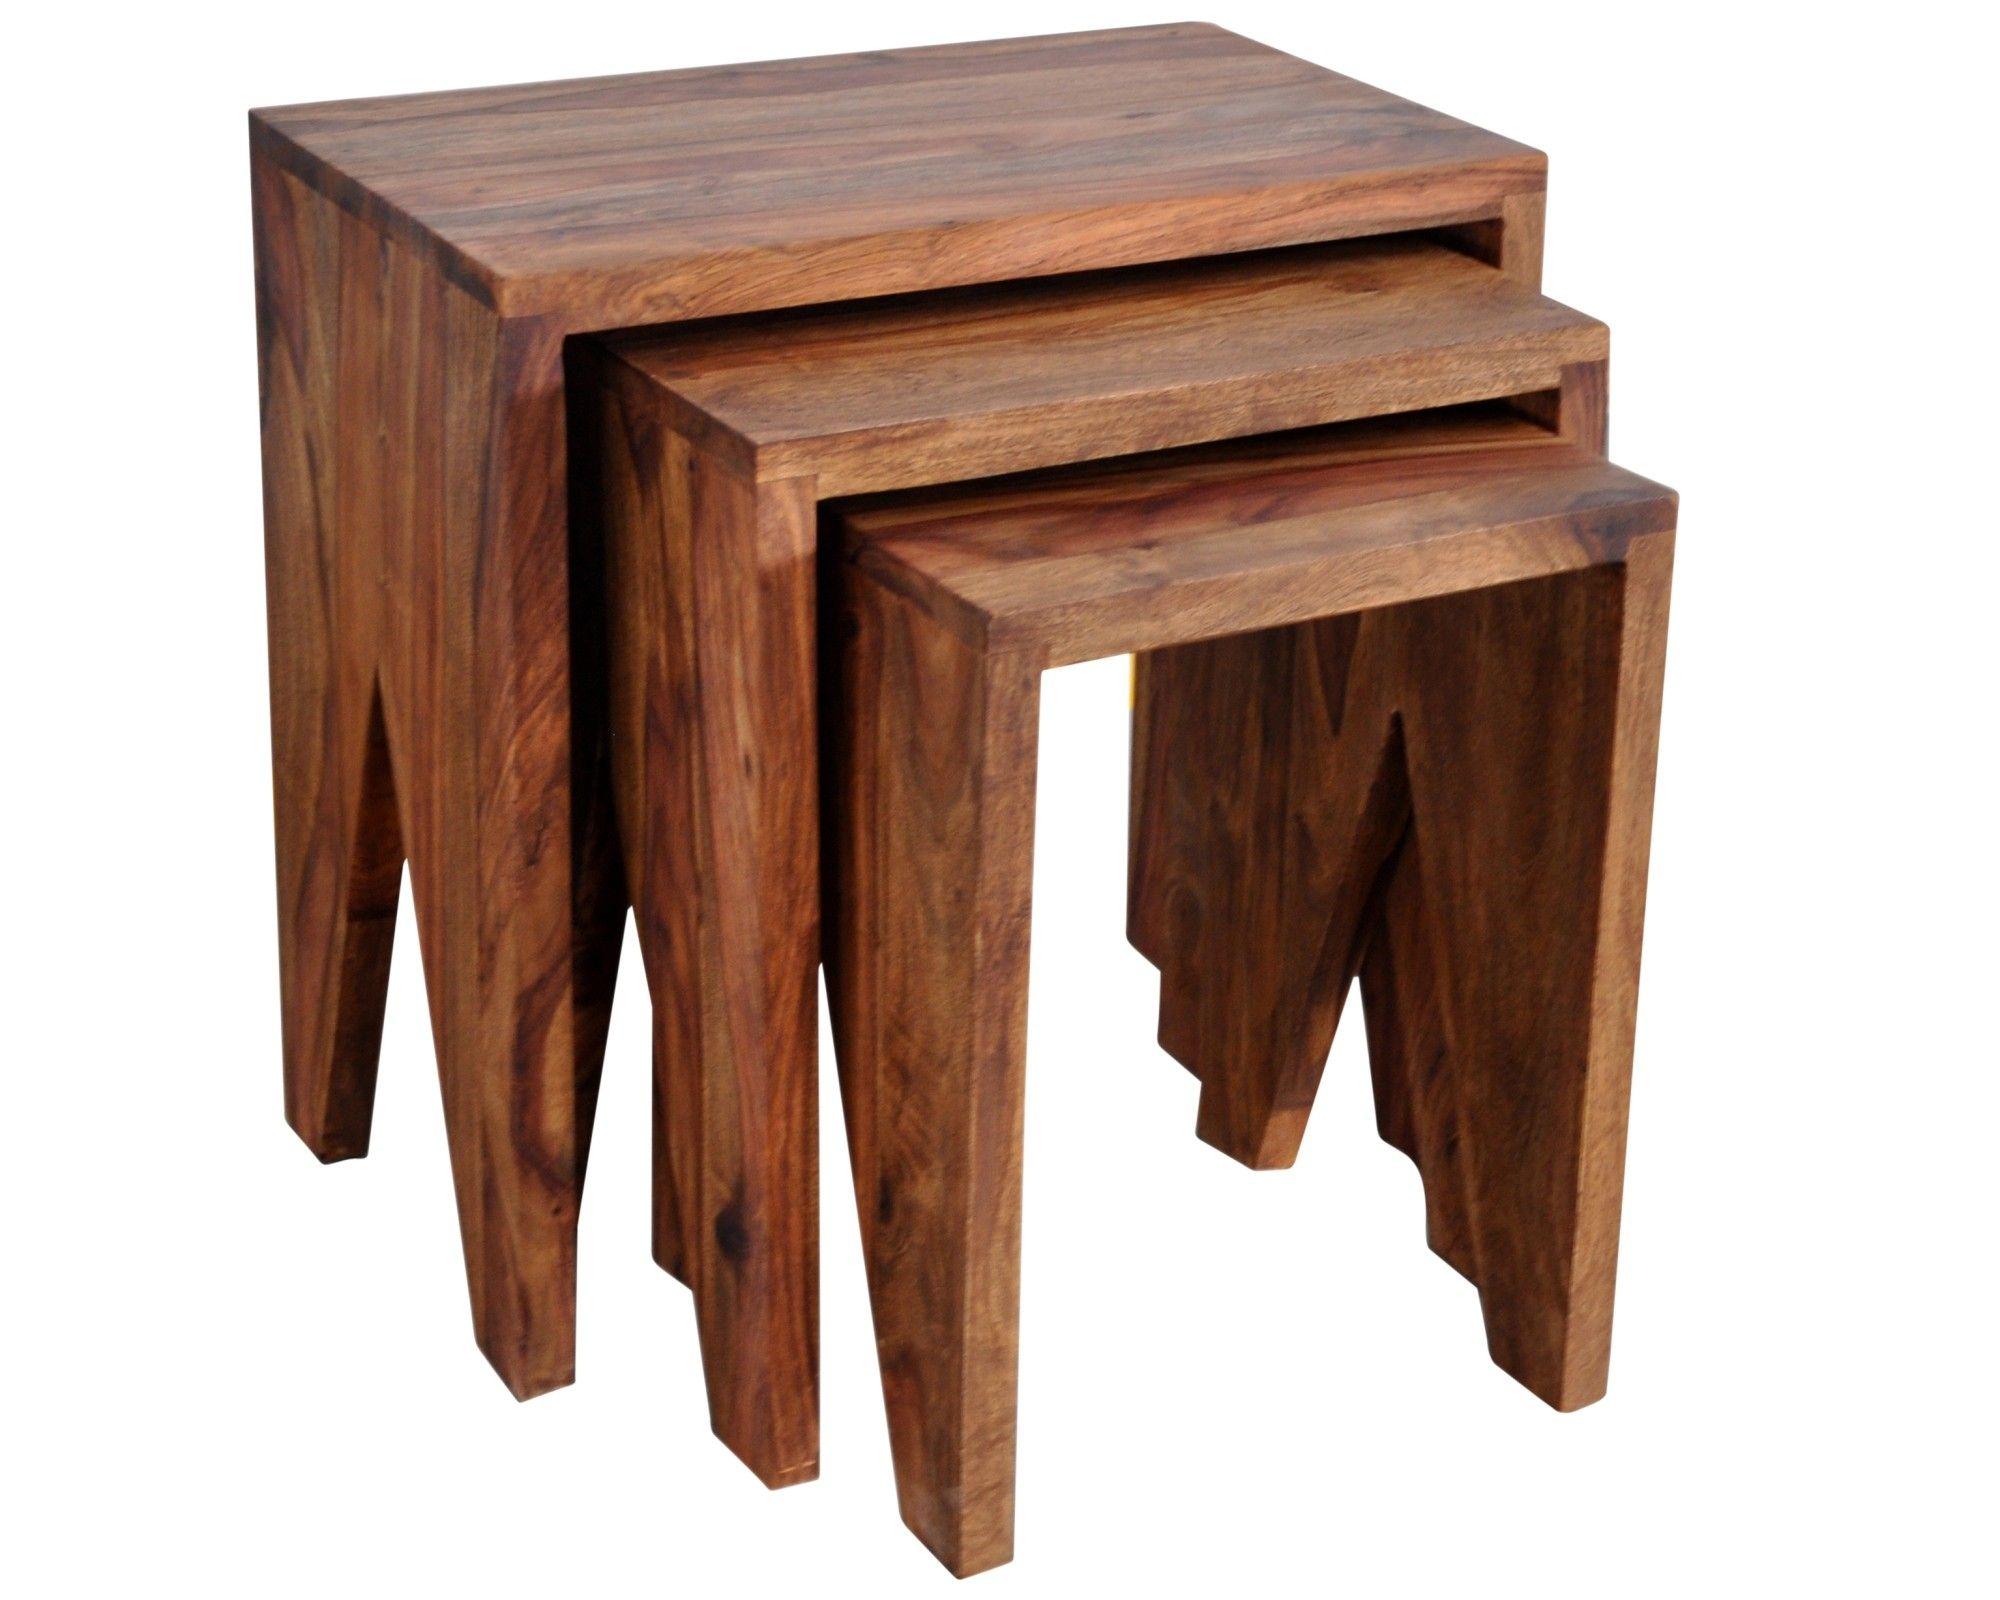 The Natural Beauty Of Indian Sheesham Wood Shows In This Solid Wood,  Hand Crafted